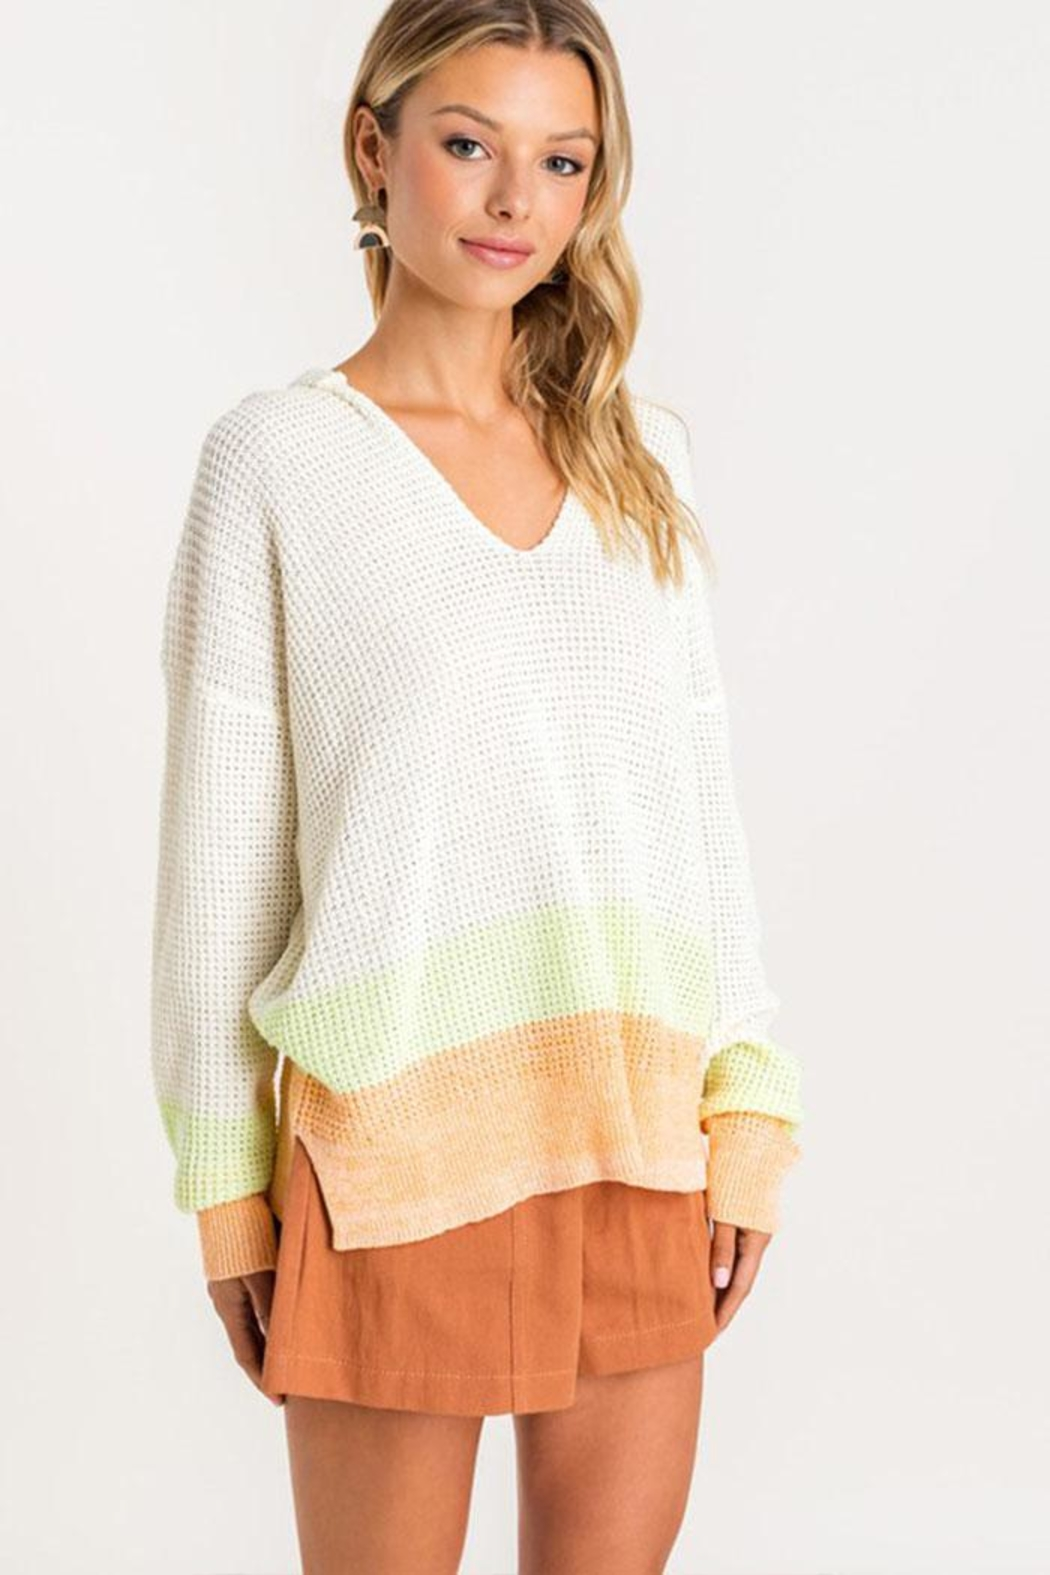 Lush Clothing  Colorblock Hooded Sweater - Main Image